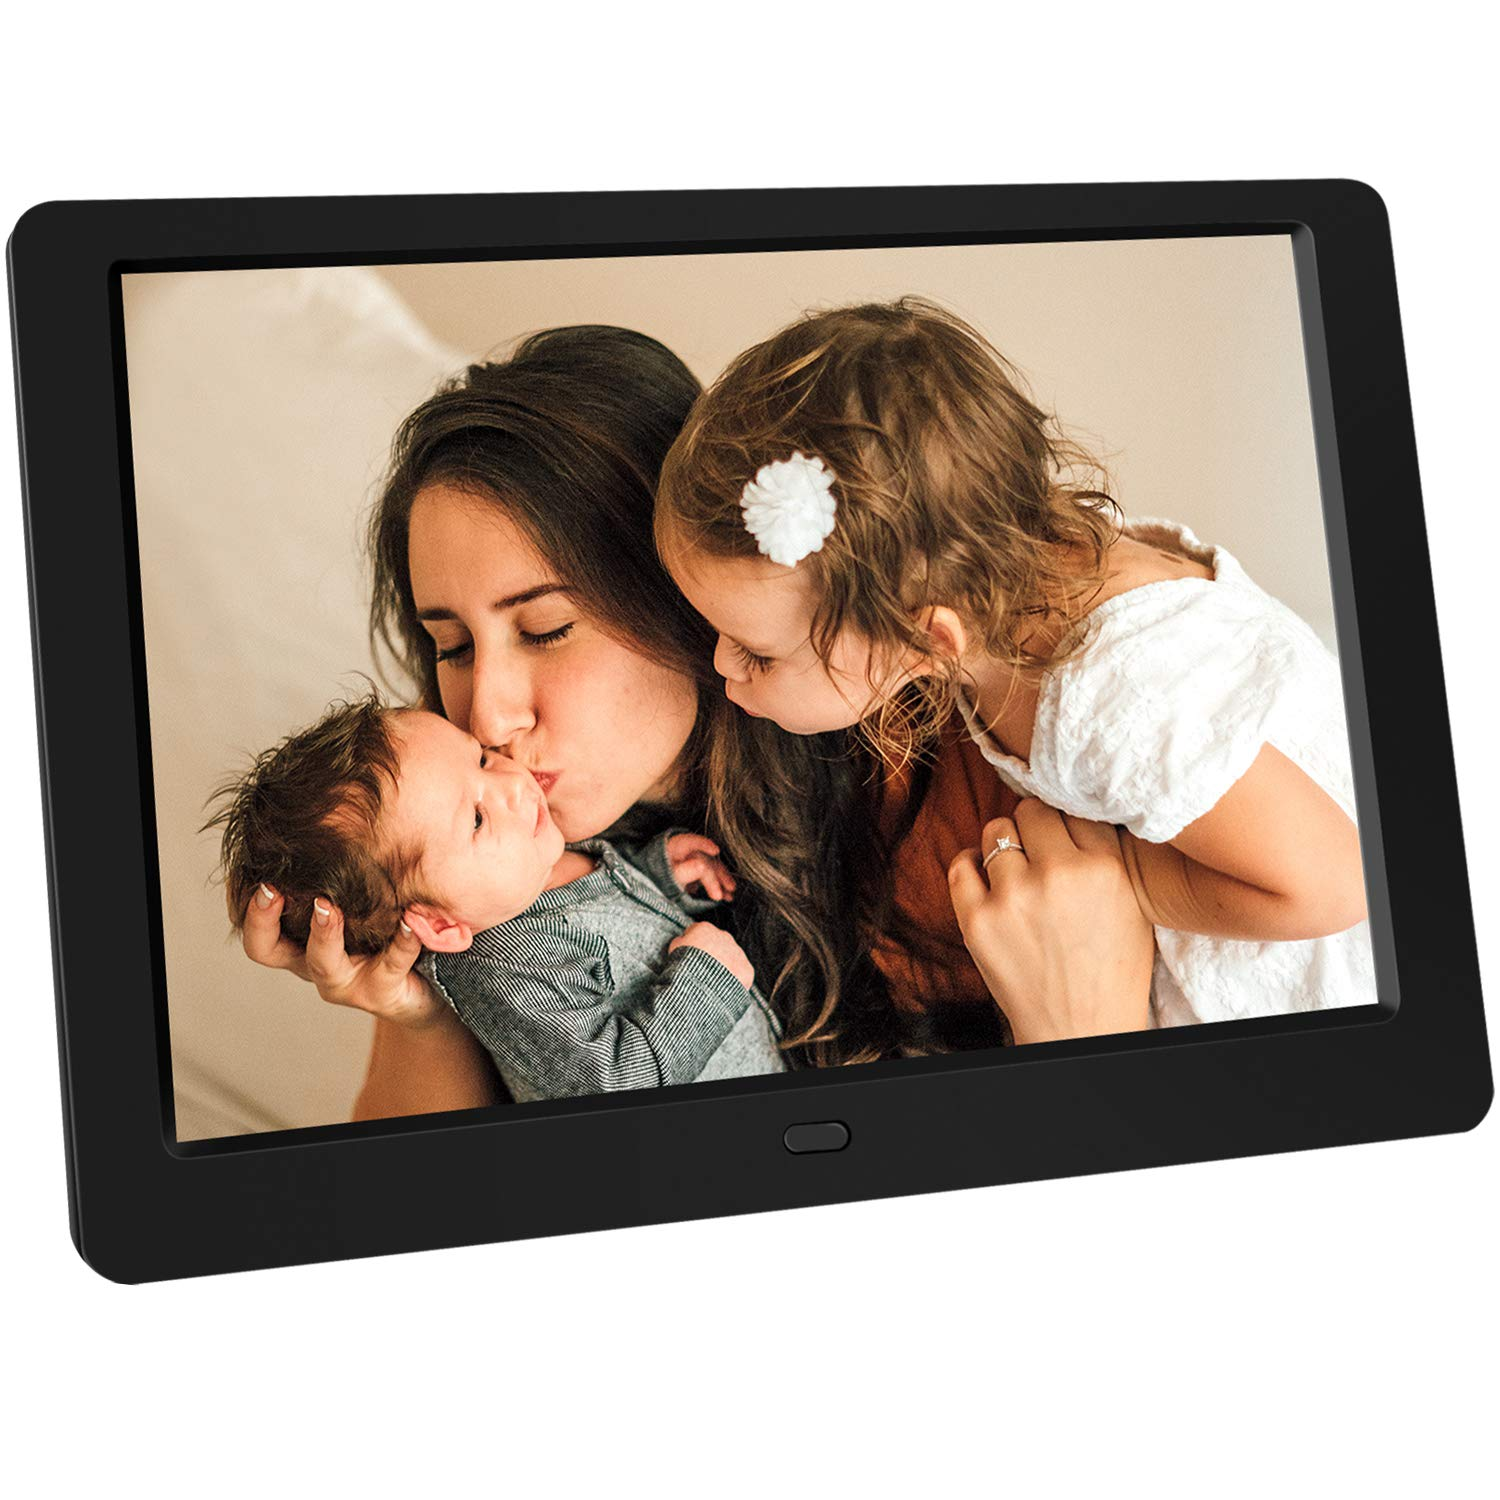 Tenswall 10 Inch Digital Photo Frame Upgraded HD 1280x800, Digital Picture Frame Full IPS Display Photo/Music/Video/Calendar/Time, Auto On/Off Timer, Support 32GB USB Drives/SD Card,Remote Control by Tenswall (Image #1)